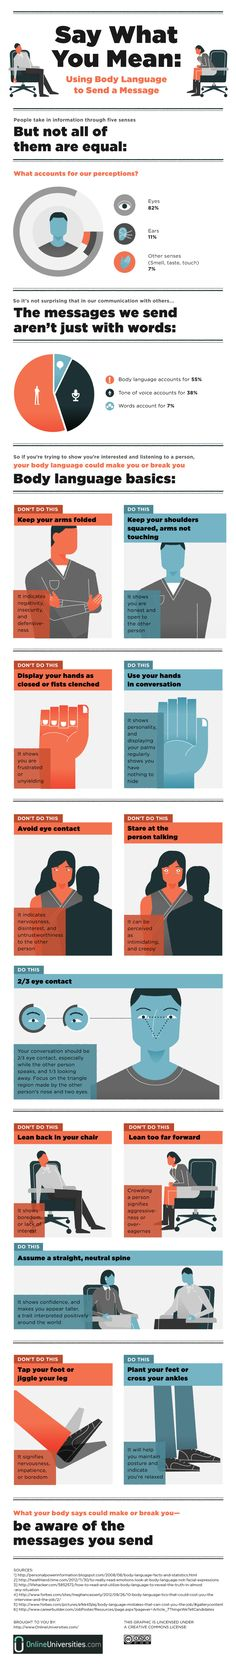 Say What You Mean: Using Body Language to Send a Message - OnlineUniversities.com #infographic #body language